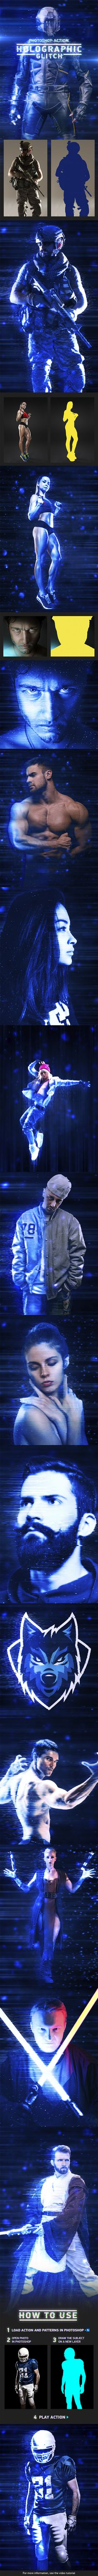 #Holographic Glitch Photoshop Action - #Photo Effects #Actions